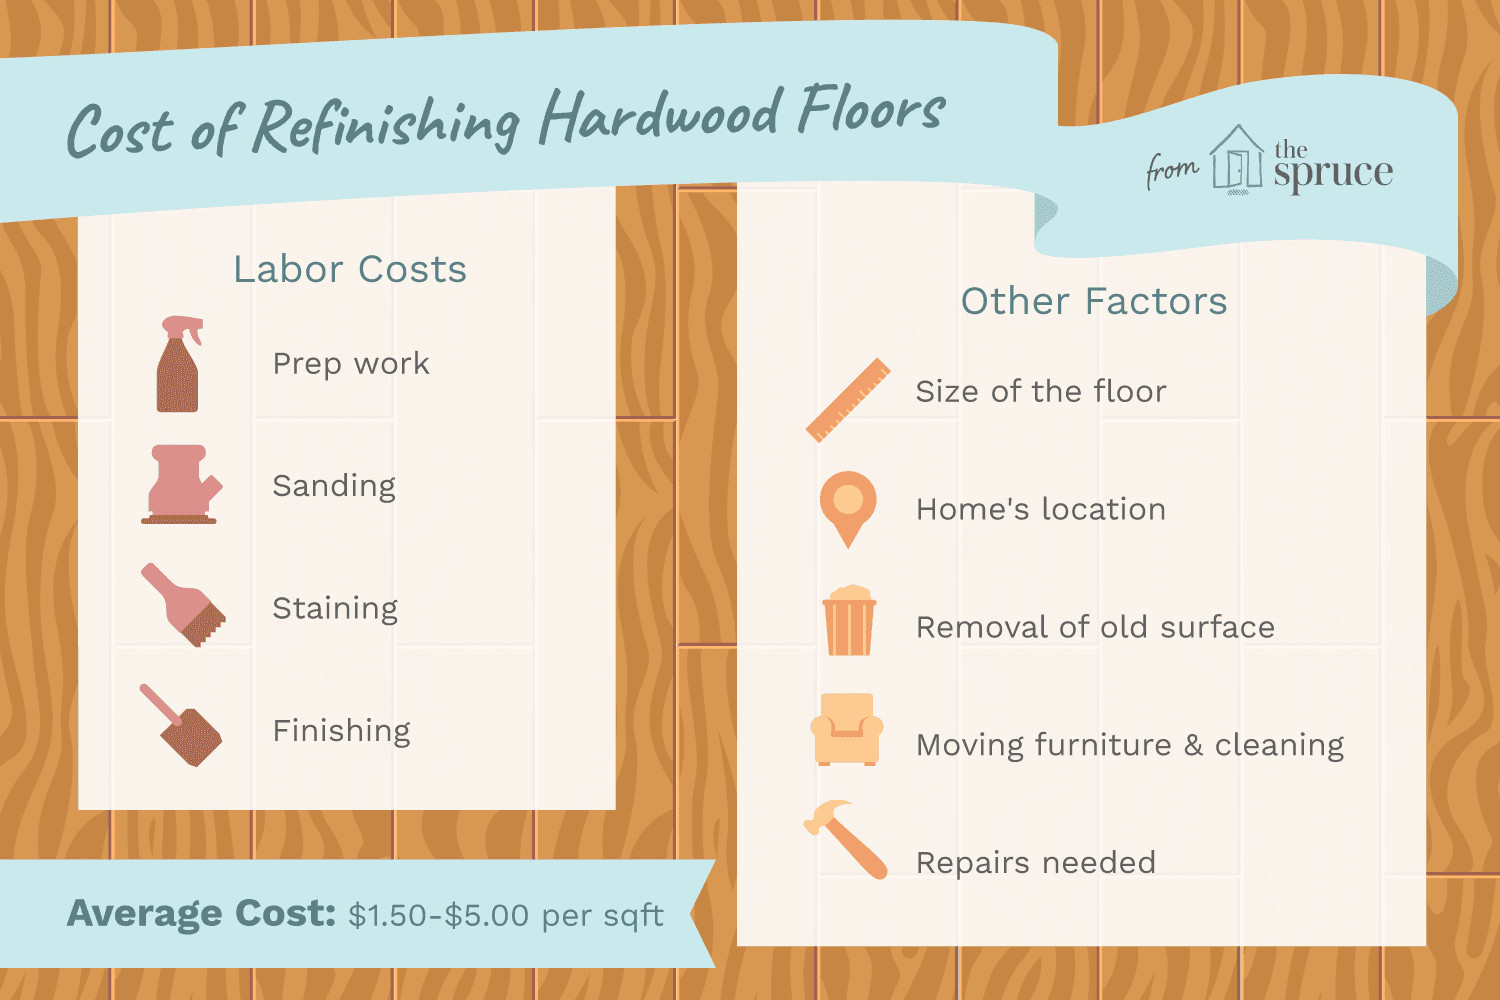 How to Clean Hardwood Floors Under Carpet Of the Cost to Refinish Hardwood Floors for Cost to Refinish Hardwood Floors 1314853 Final 5bb6259346e0fb0026825ce2